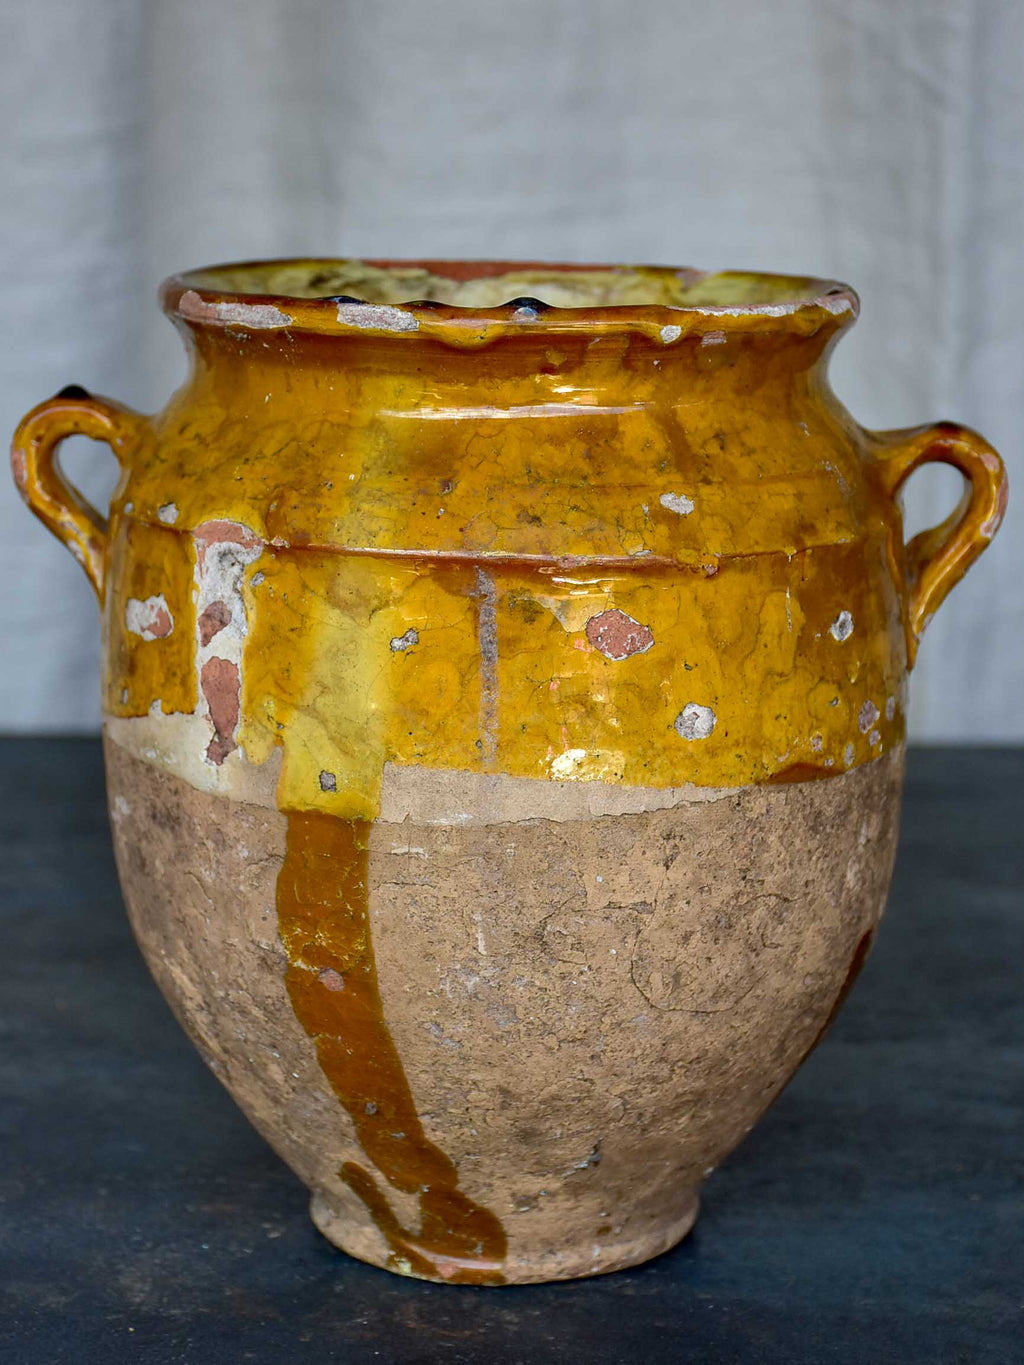 Antique French preserving pot with yellow glaze and handles 9 ½''